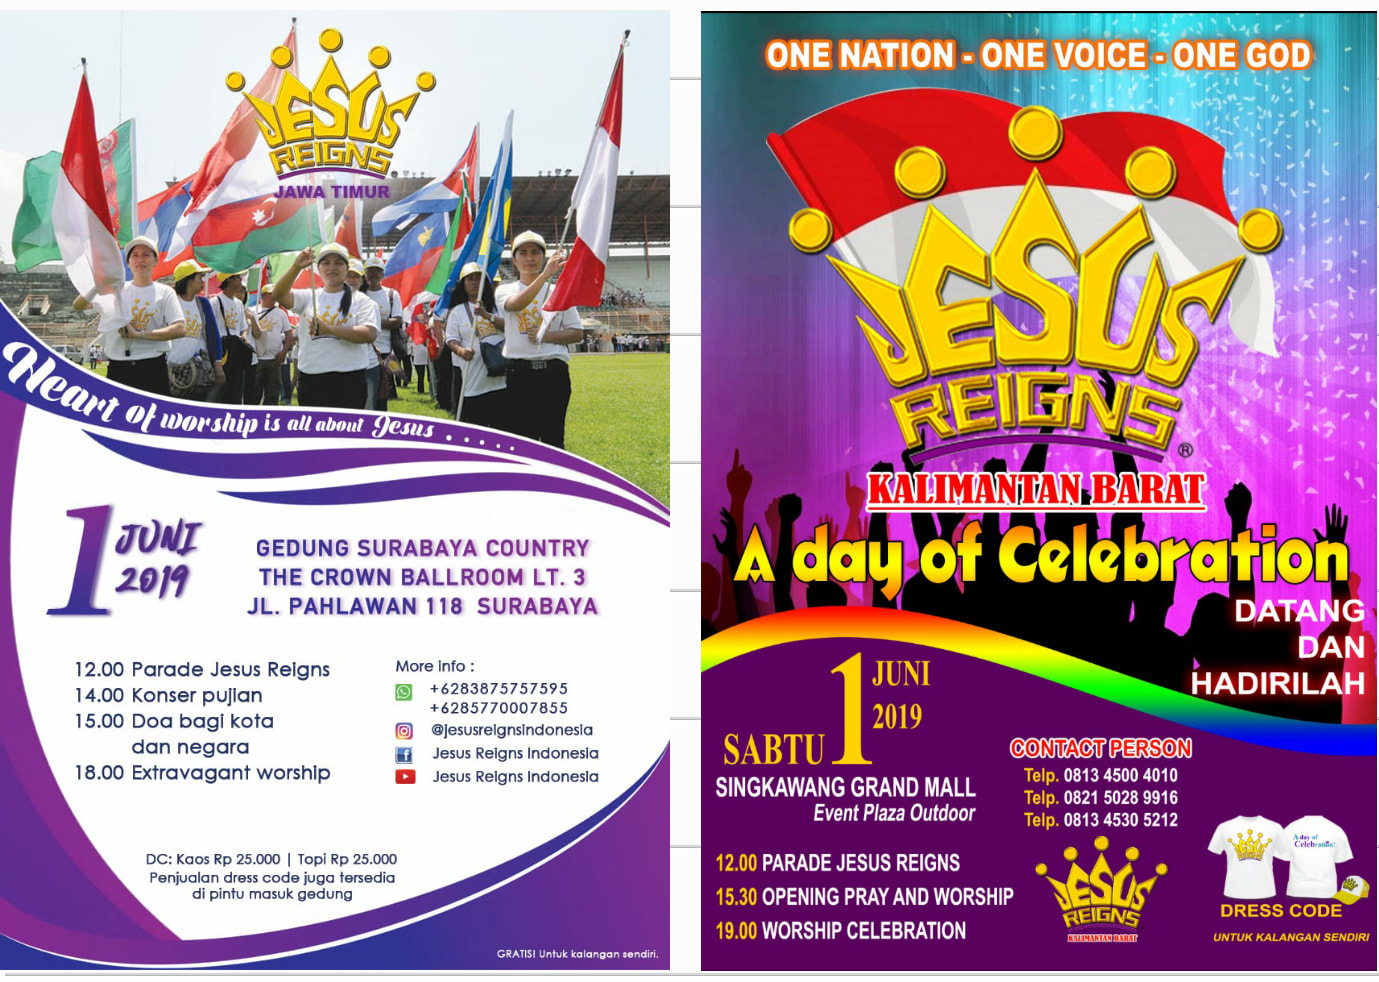 Jesus Reigns Indonesia – A Day of Celebration